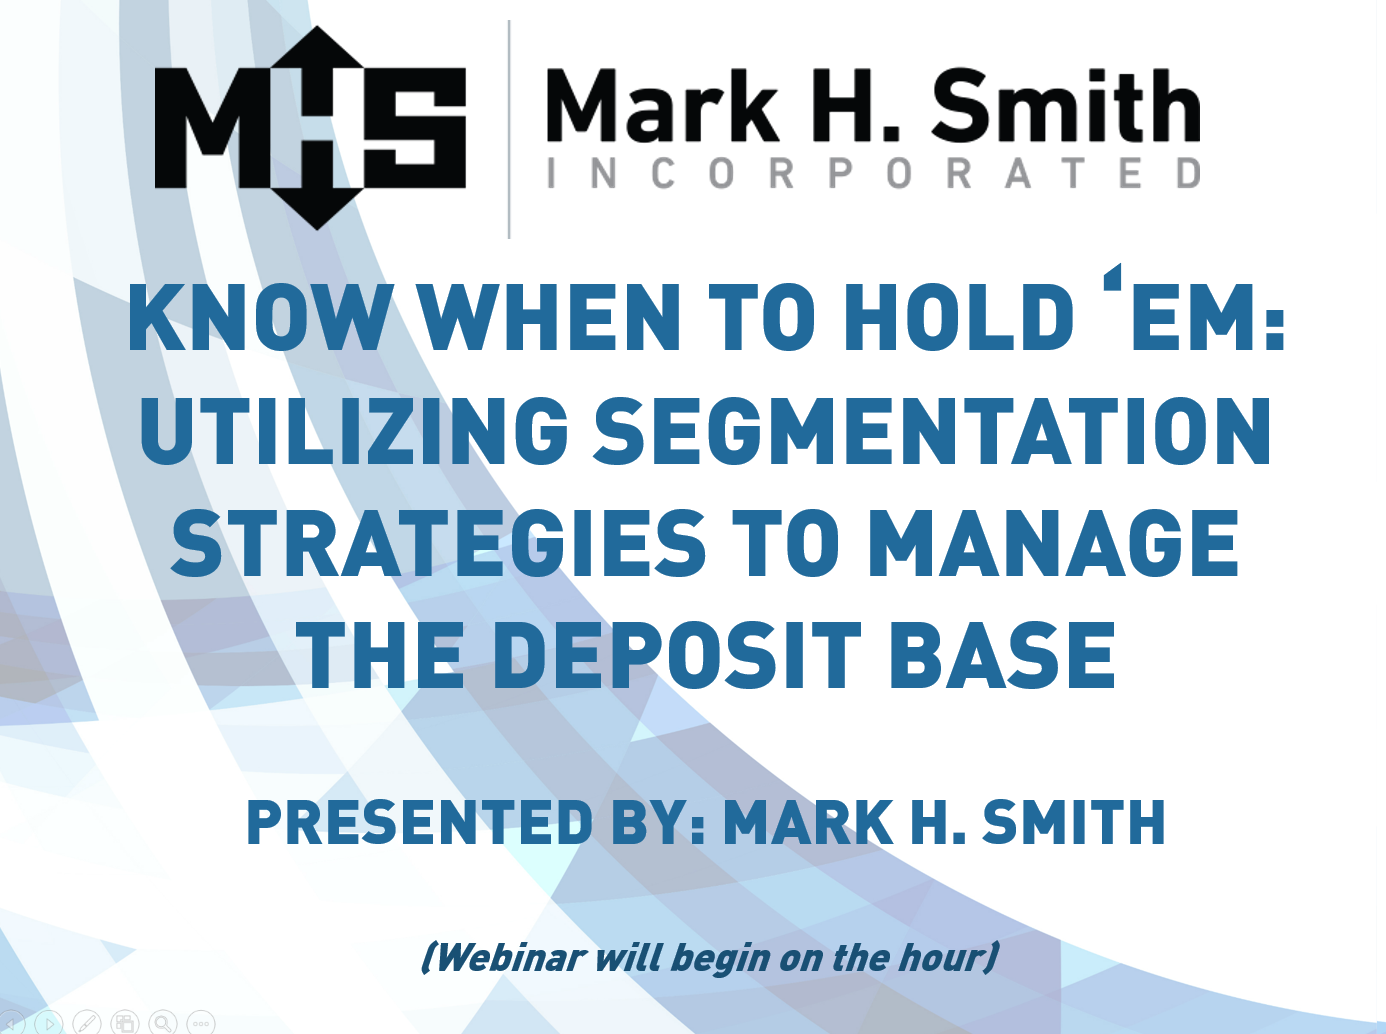 Utilizing Segmentation Strategies To Manage Deposit Base Webinar Video